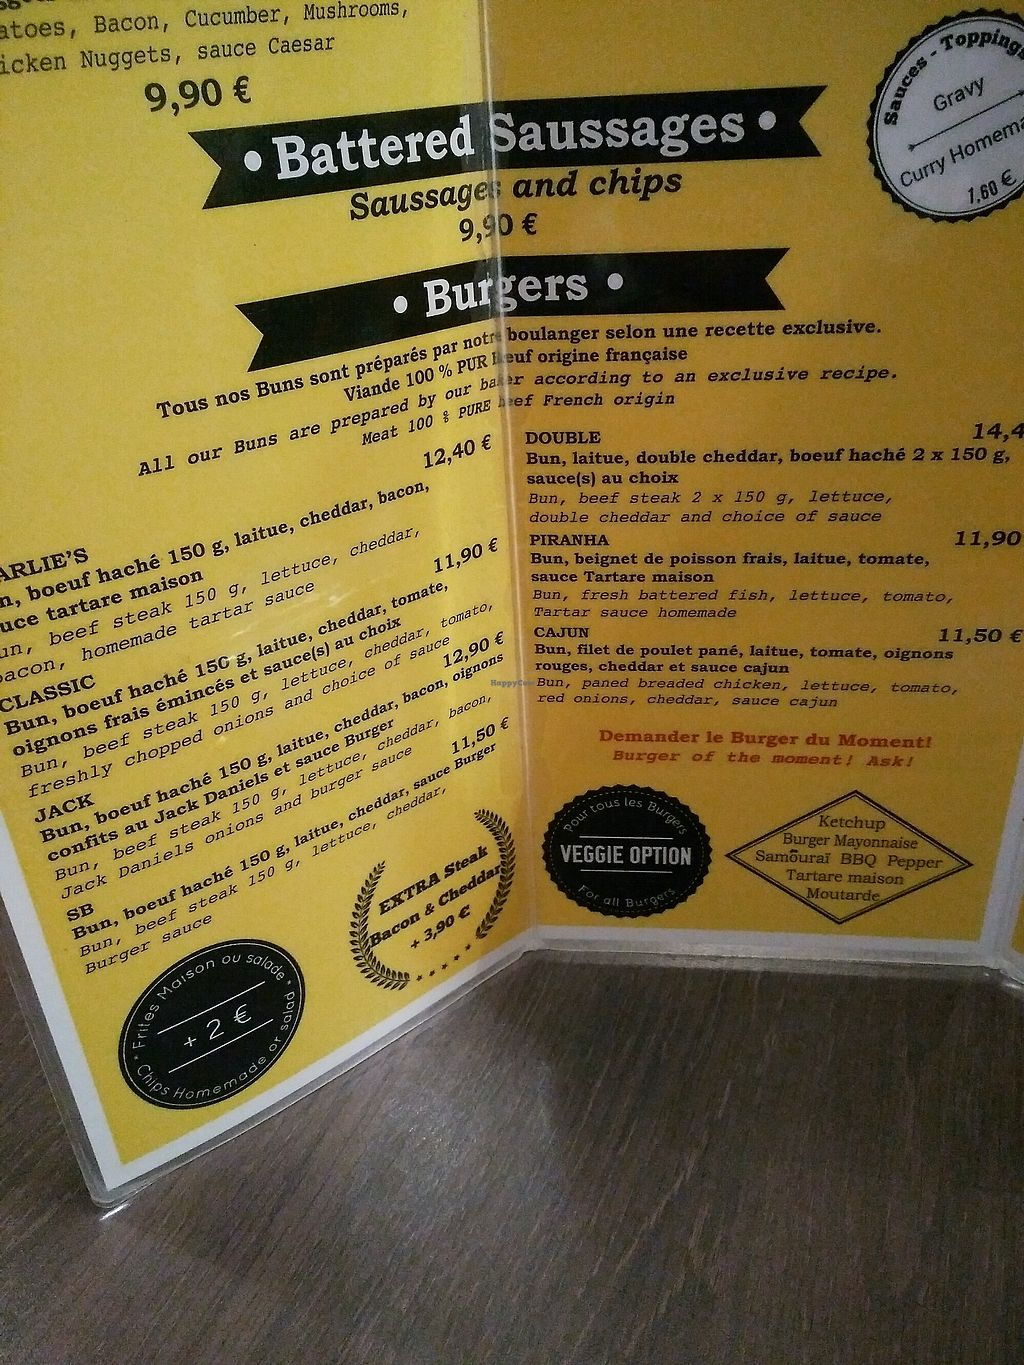 """Photo of Charlie's Burgers  by <a href=""""/members/profile/Logge"""">Logge</a> <br/>menu <br/> December 8, 2017  - <a href='/contact/abuse/image/93455/333537'>Report</a>"""